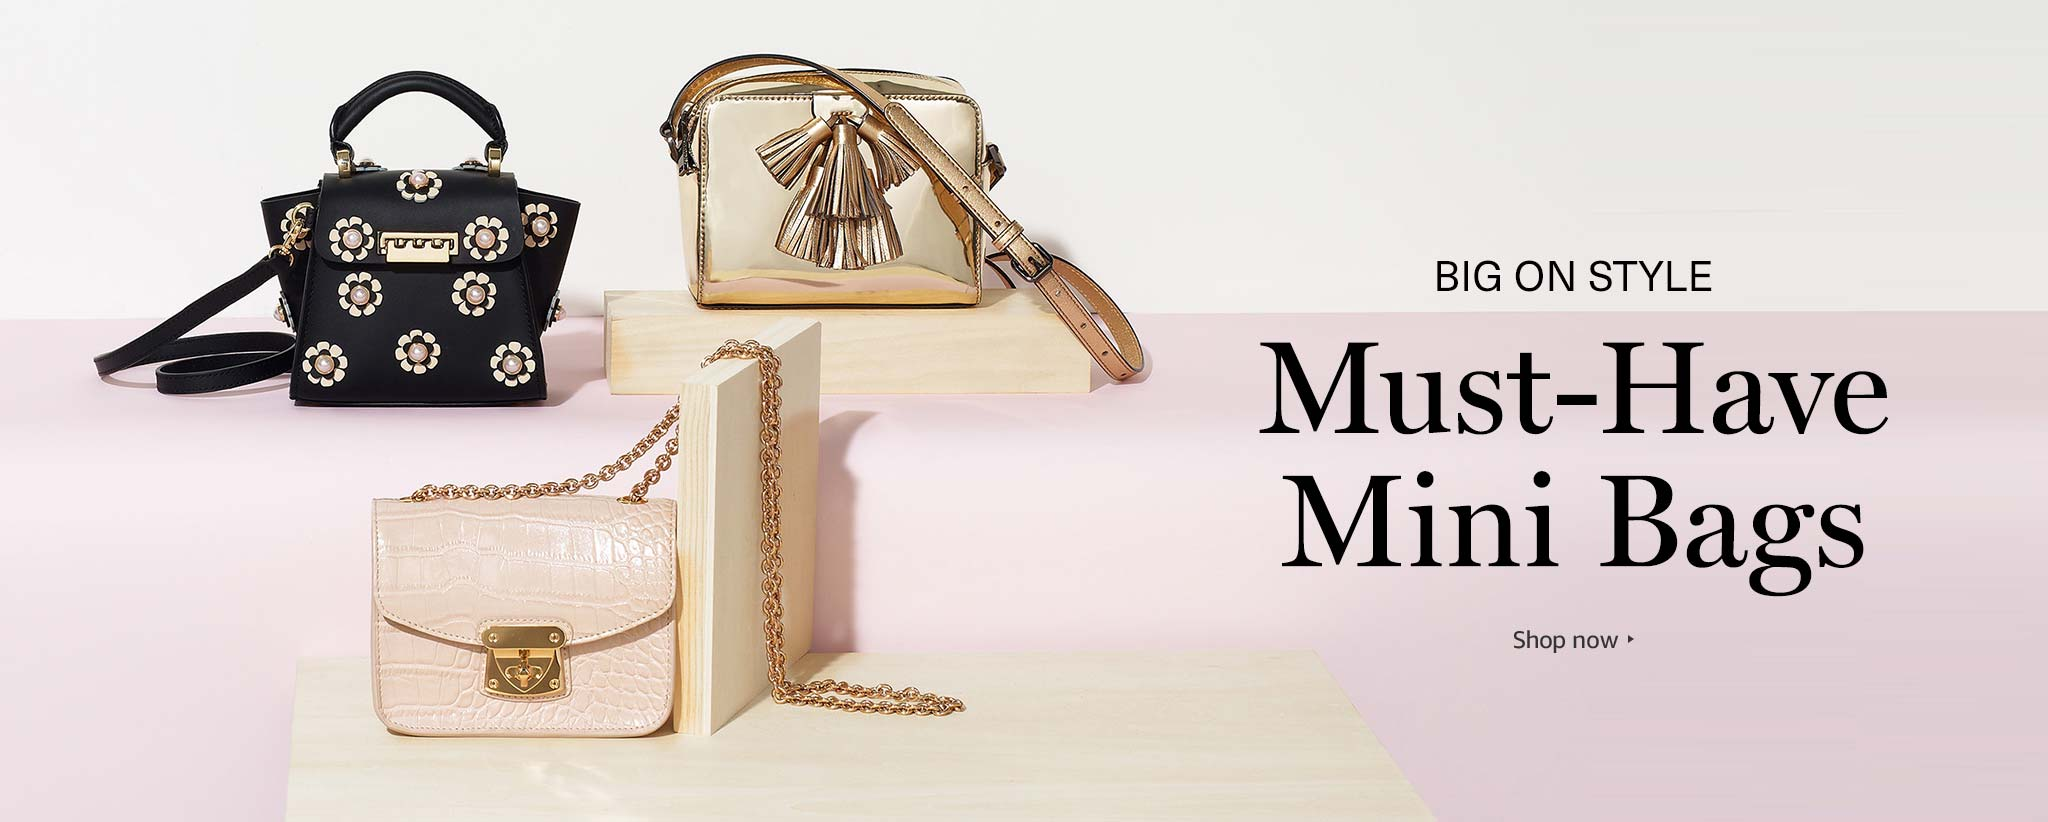 Big on Style: Must-Have Mini Bags